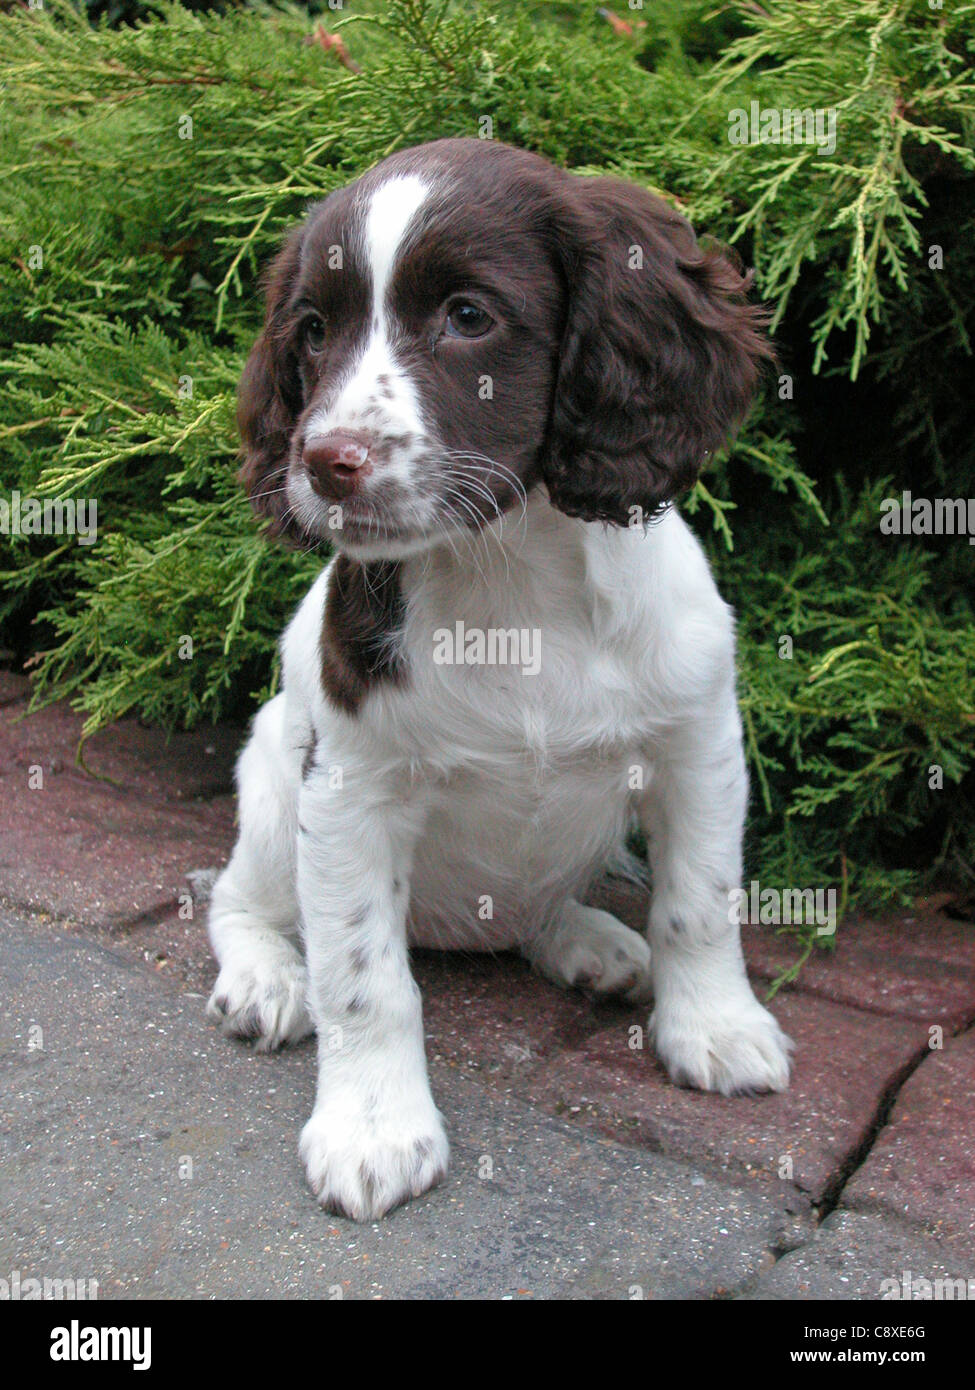 Coloriage Chien Springer.This Is A Springer Spaniel Puppy Stock Photo 39919896 Alamy